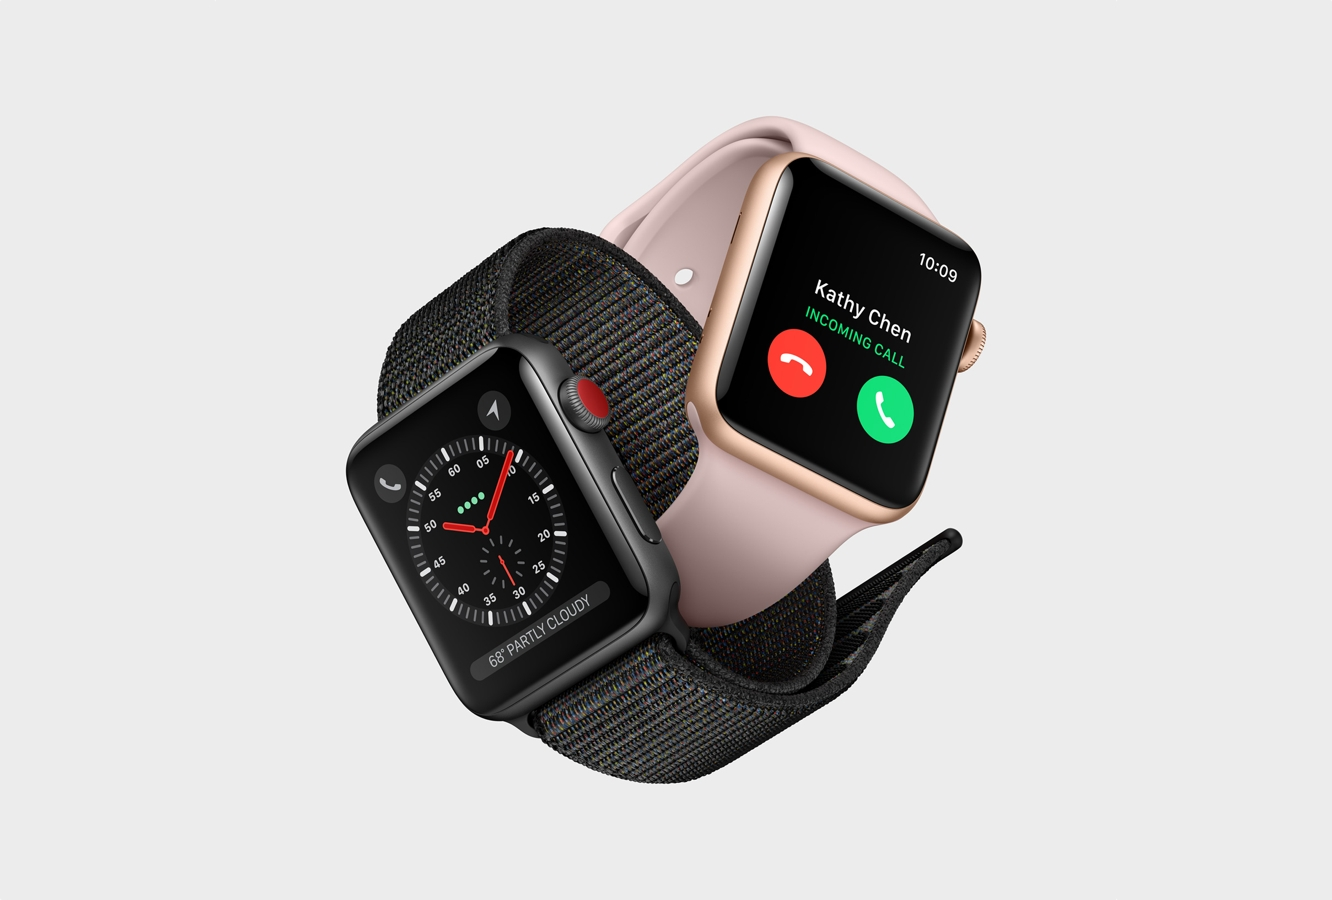 U.S. Apple Watch Series 3 Cellular models will only work on U.S. carriers 1